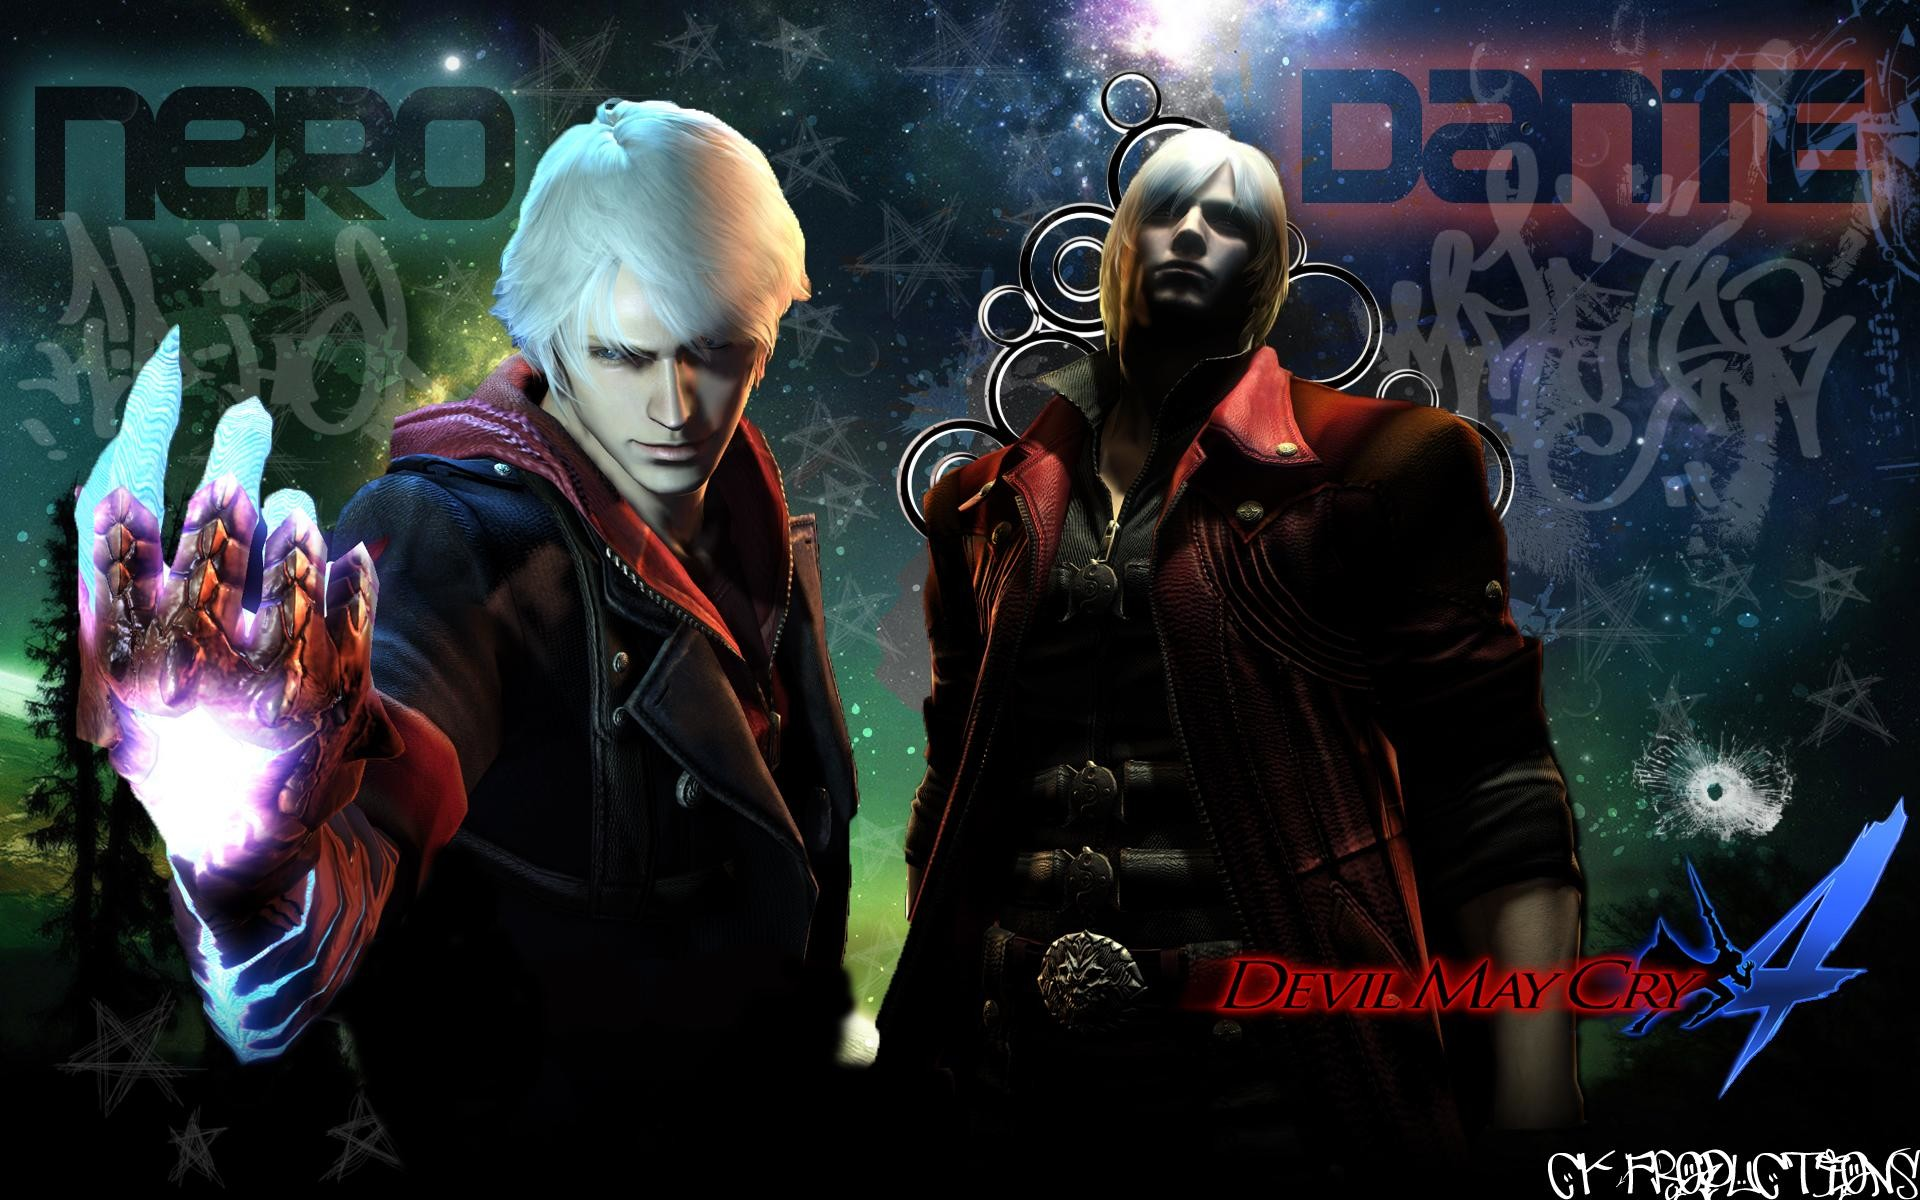 Find out: Devil May Cry 4 wallpaper on https://hdpicorner.com/devil-may-cry-4/  | Desktop Wallpapers | Pinterest | Devil and Wallpaper